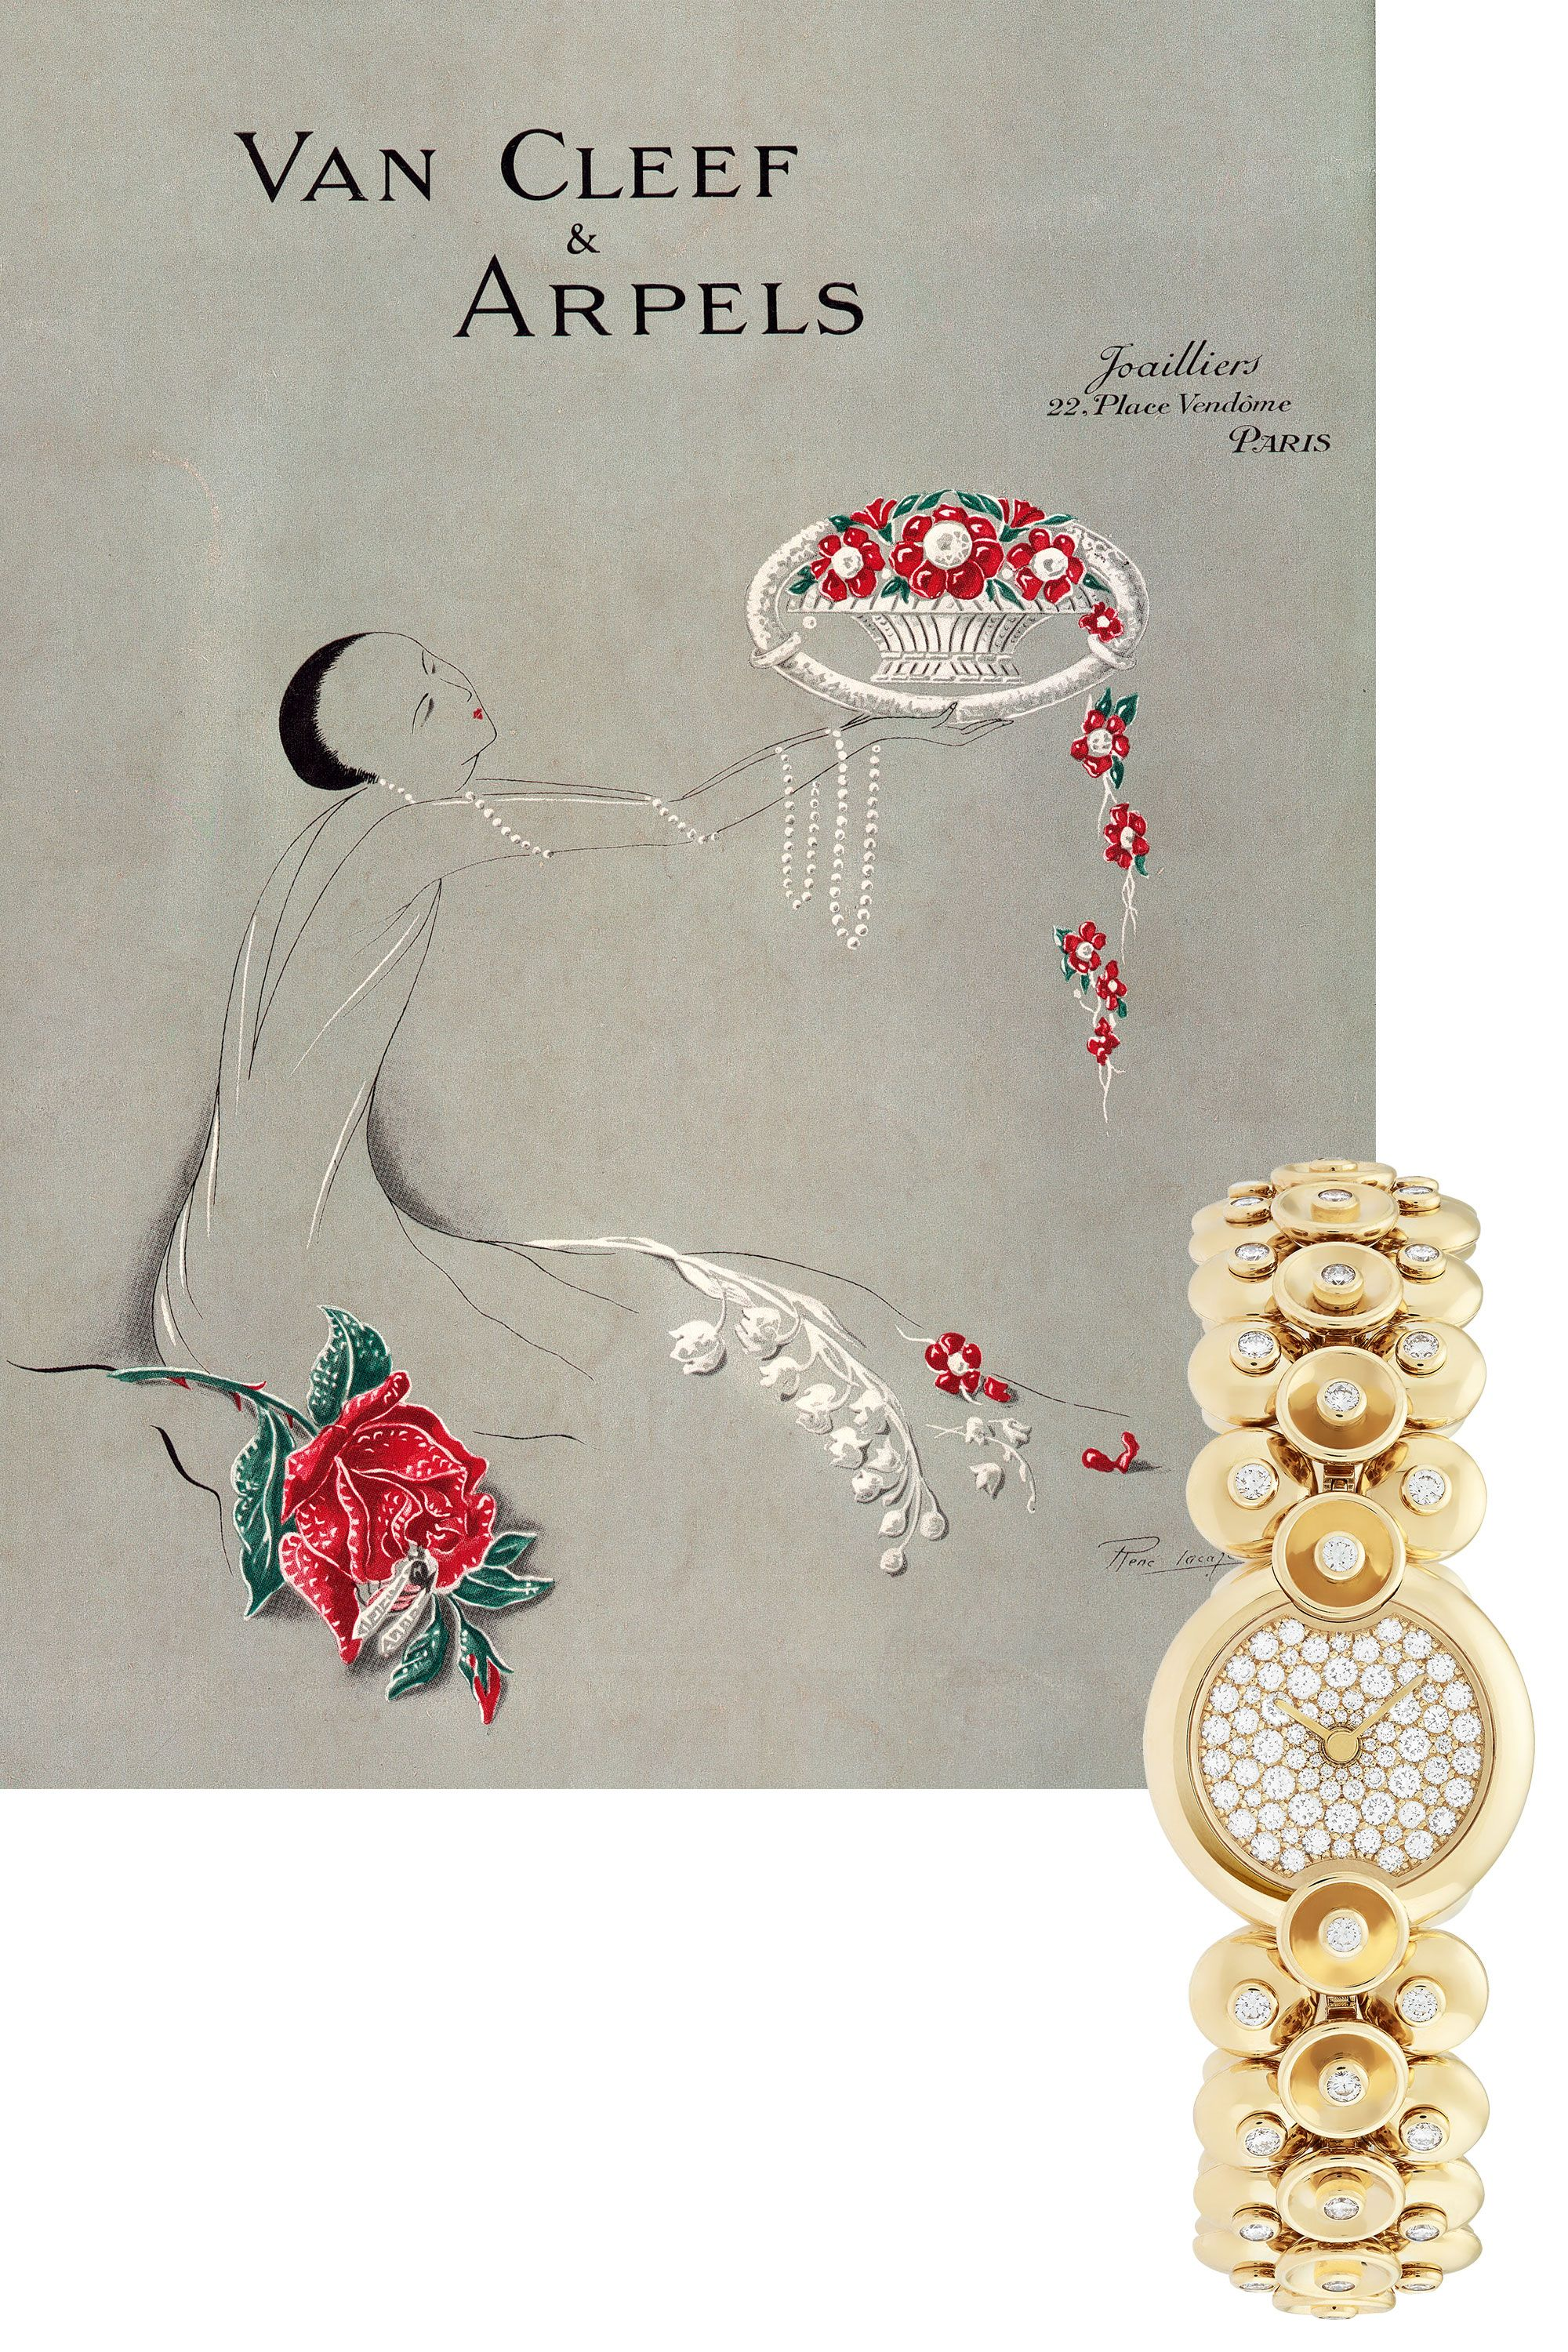 "<p>Art Deco elegance was in full force in this Van Cleef & Arpels ad for its boutique at Paris's Place Vendôme<span class=""redactor-invisible-space"" data-verified=""redactor"" data-redactor-tag=""span"" data-redactor-class=""redactor-invisible-space"">. T</span>he same level of glam is still apparent today, with a yellow gold and diamond watch based on a ""paillette"" motif created in the 1930s. </p><p><em data-redactor-tag=""em"" data-verified=""redactor"">Bouton d'or, $64,500; </em><a href=""http://www.vancleefarpels.com/us/en.html"" target=""_blank"" data-tracking-id=""recirc-text-link""><em data-redactor-tag=""em"" data-verified=""redactor"">vancleefarpels.com</em></a></p>"